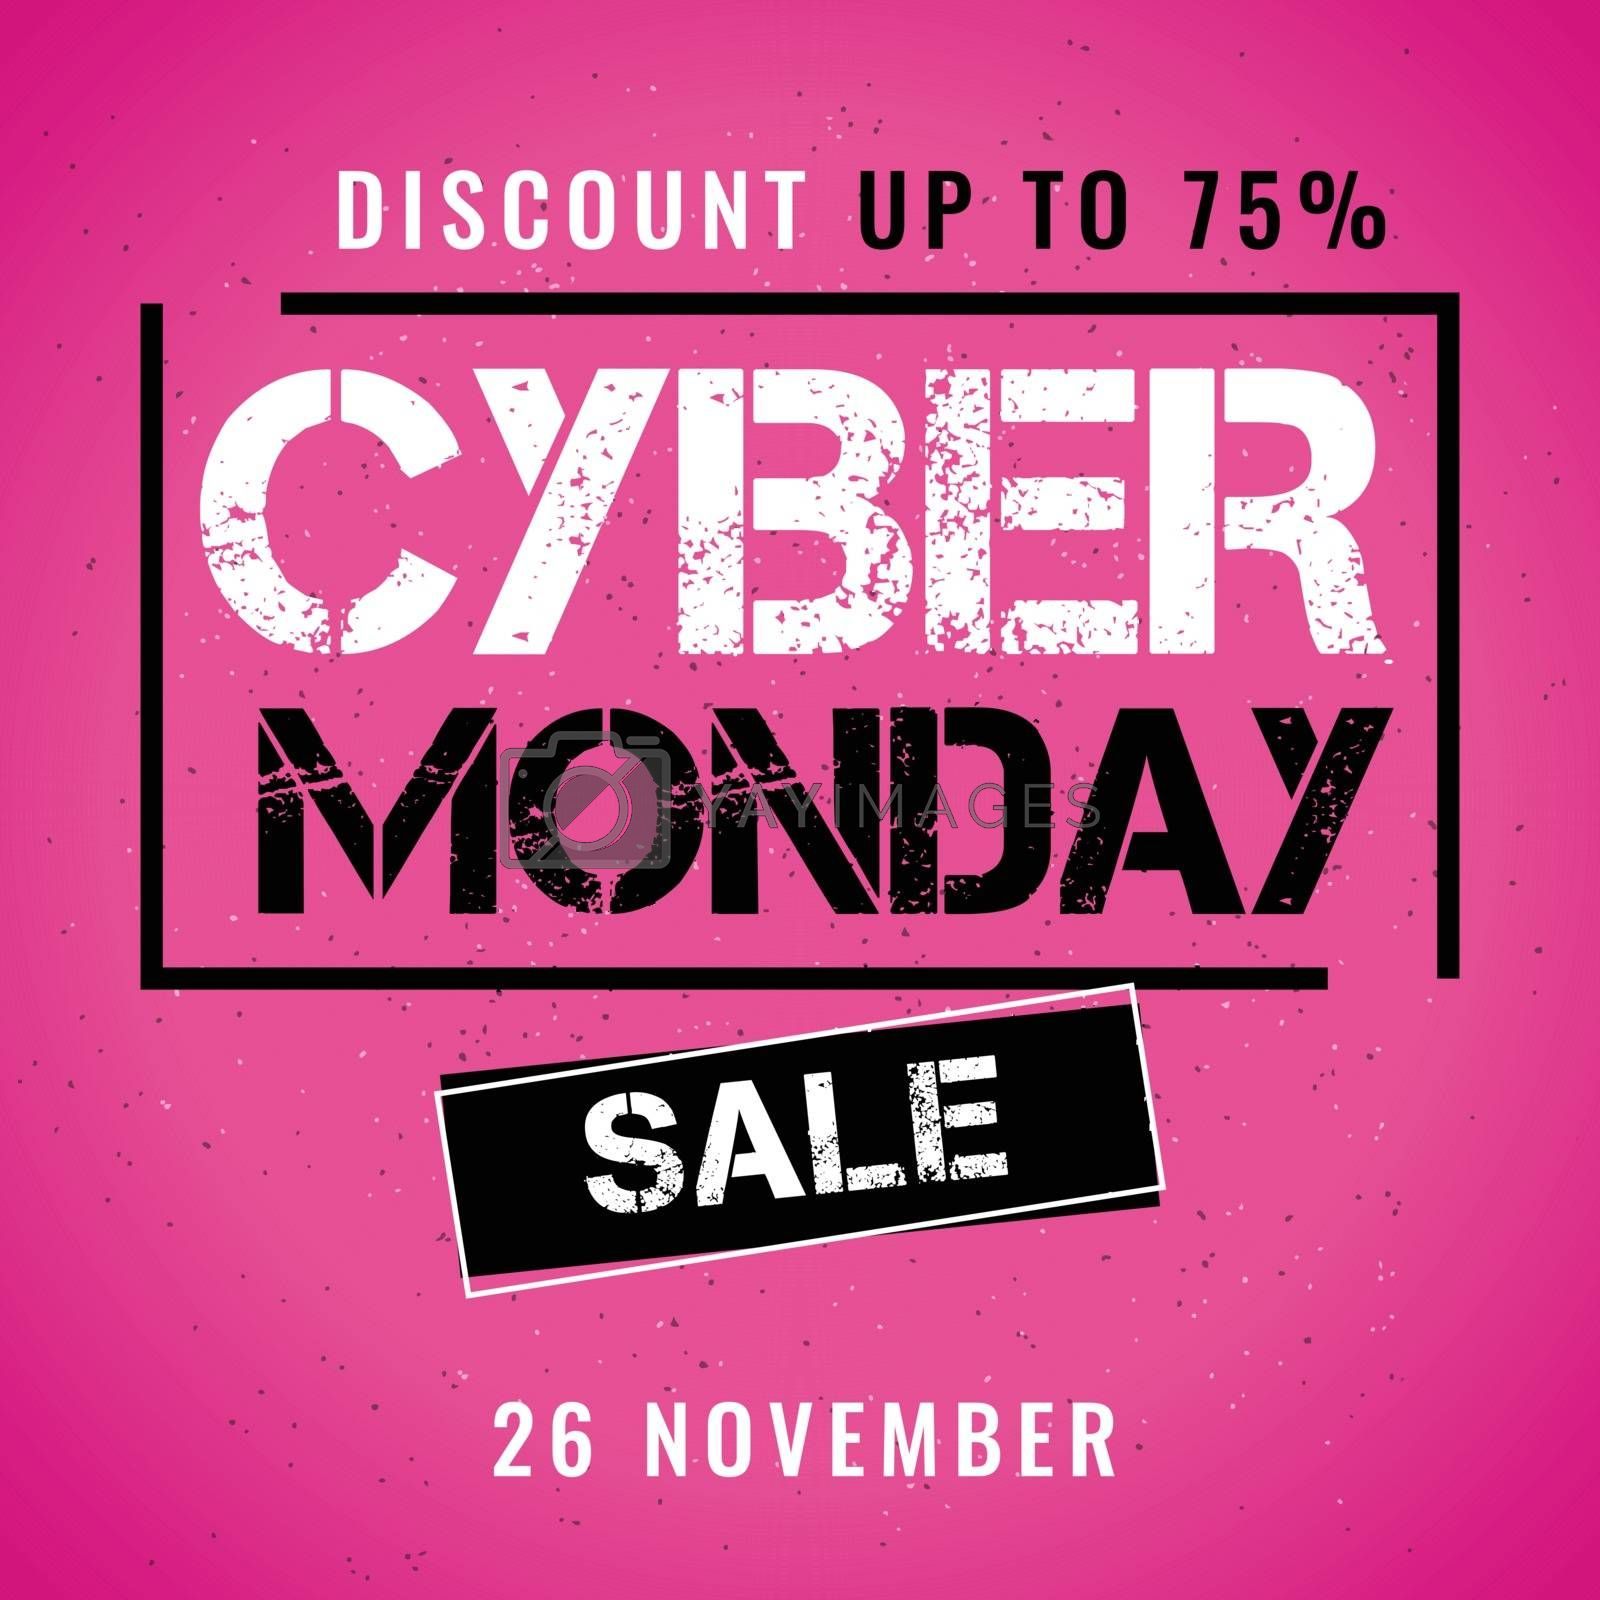 Cyber Monday Sale banner or poster design with 75% Discount offer.